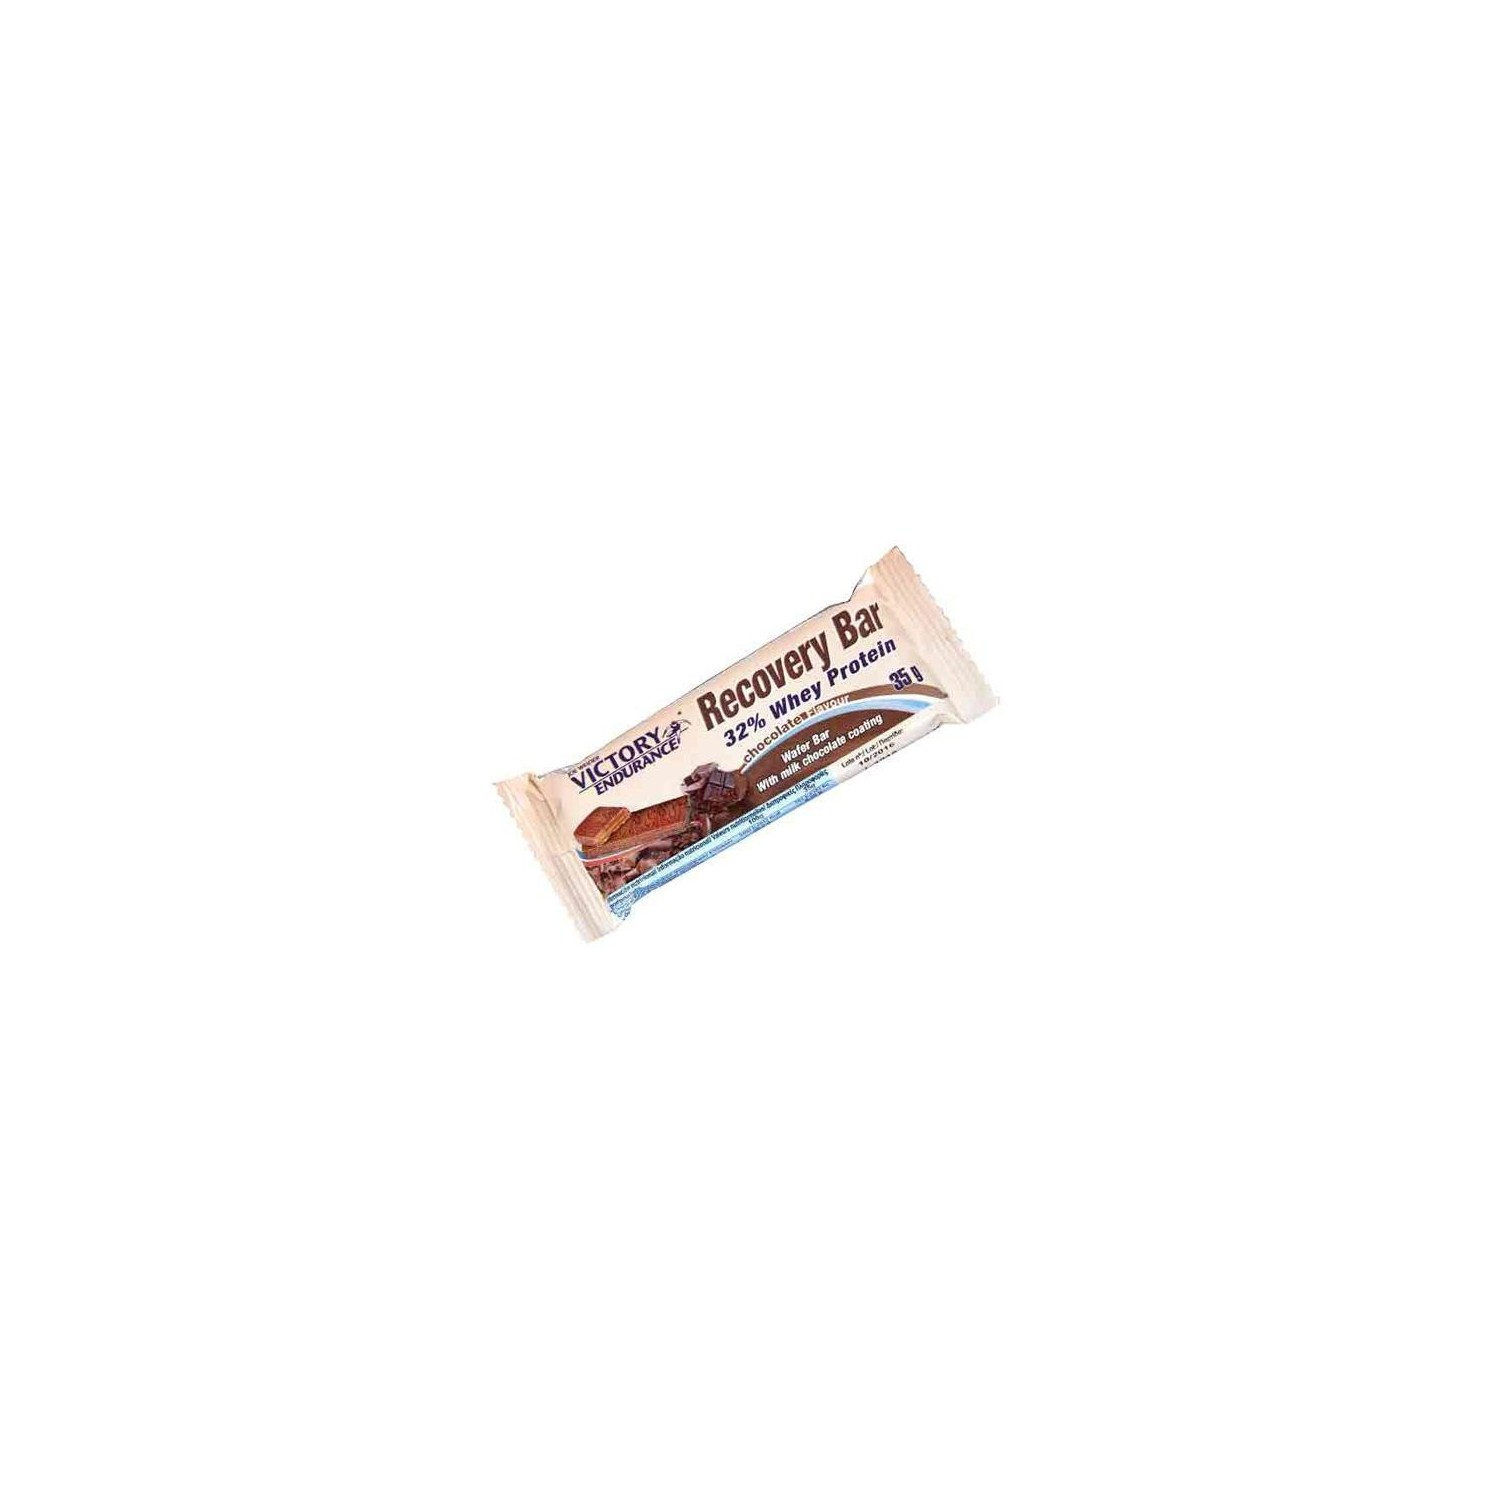 ... > Nutrición running > VICTORY E. RECOVERY BAR PROT. CHOCOLATE 35GR